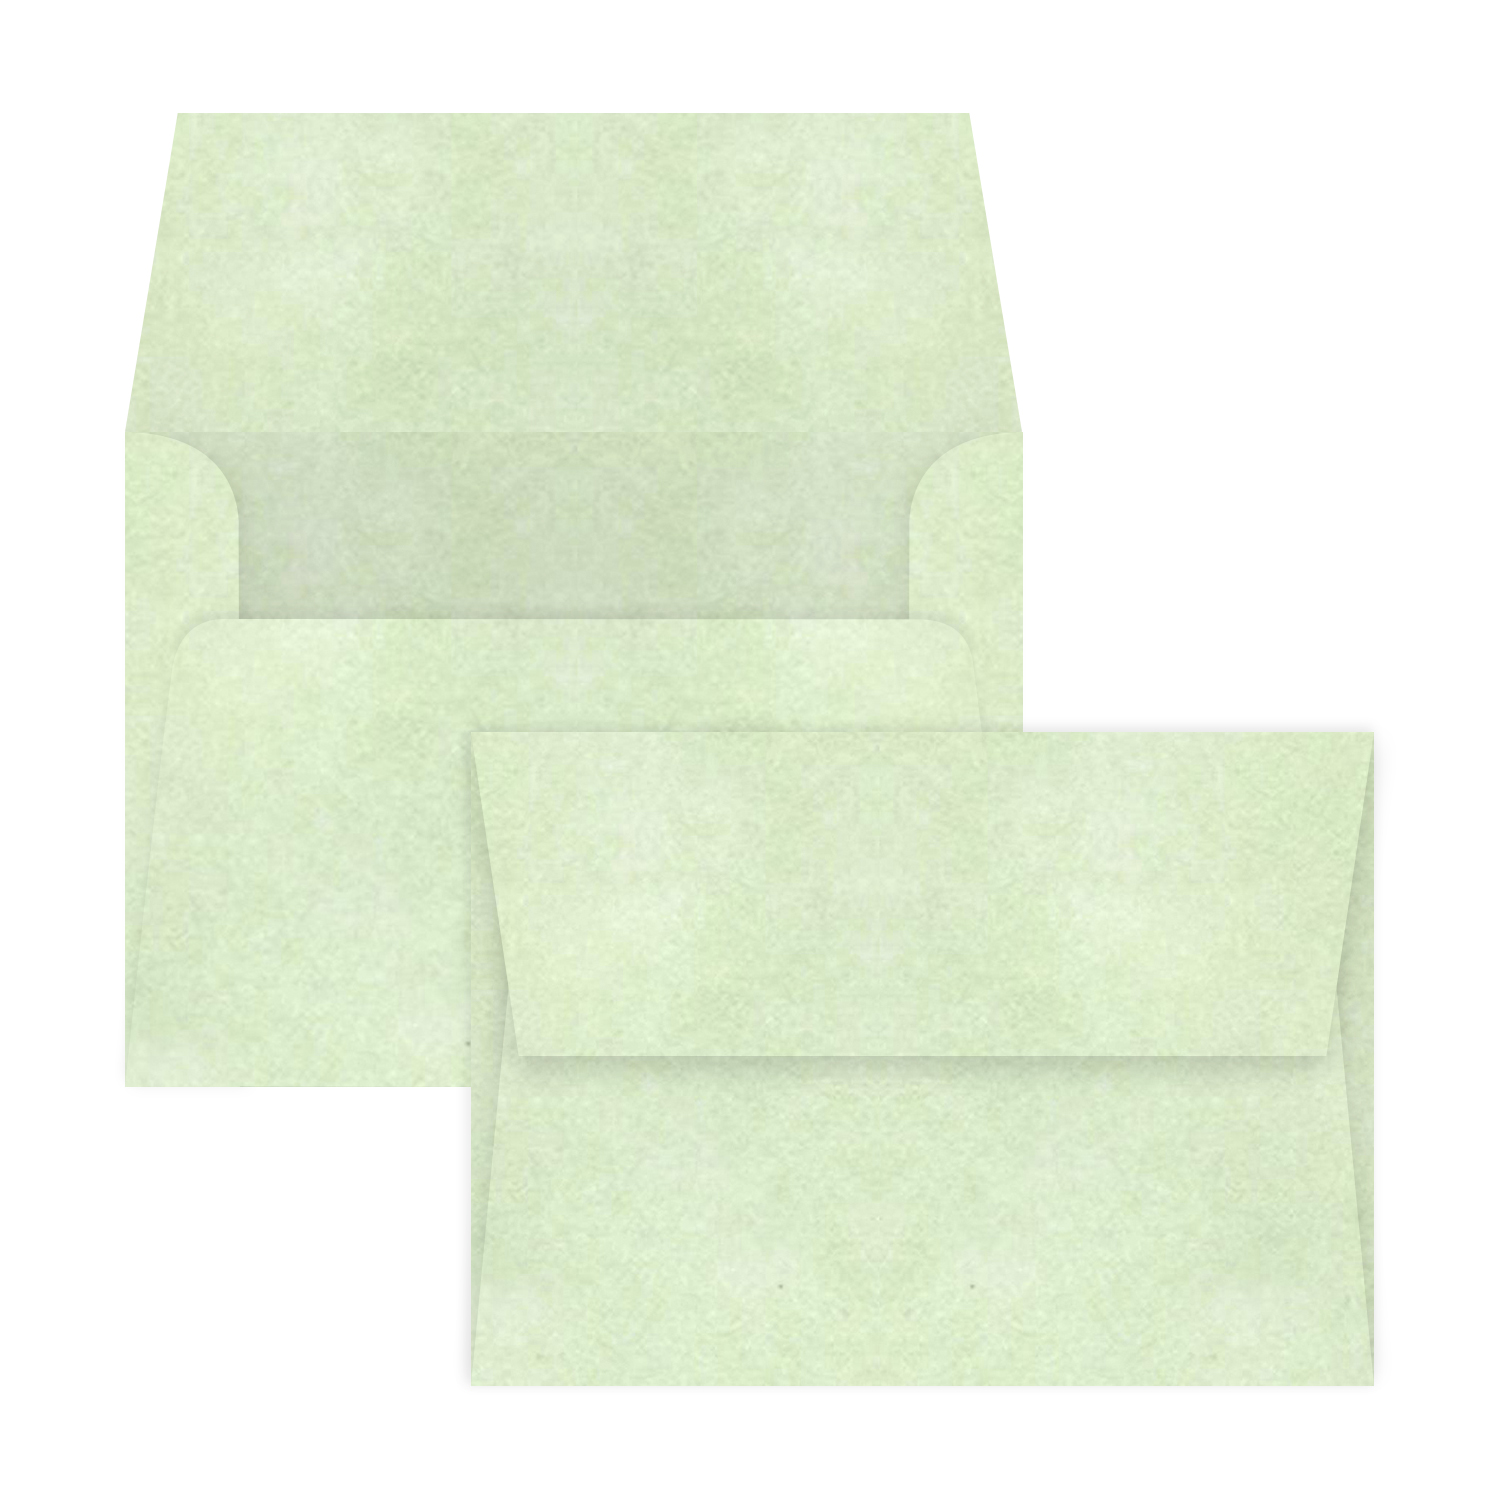 A6 Parchment Envelopes